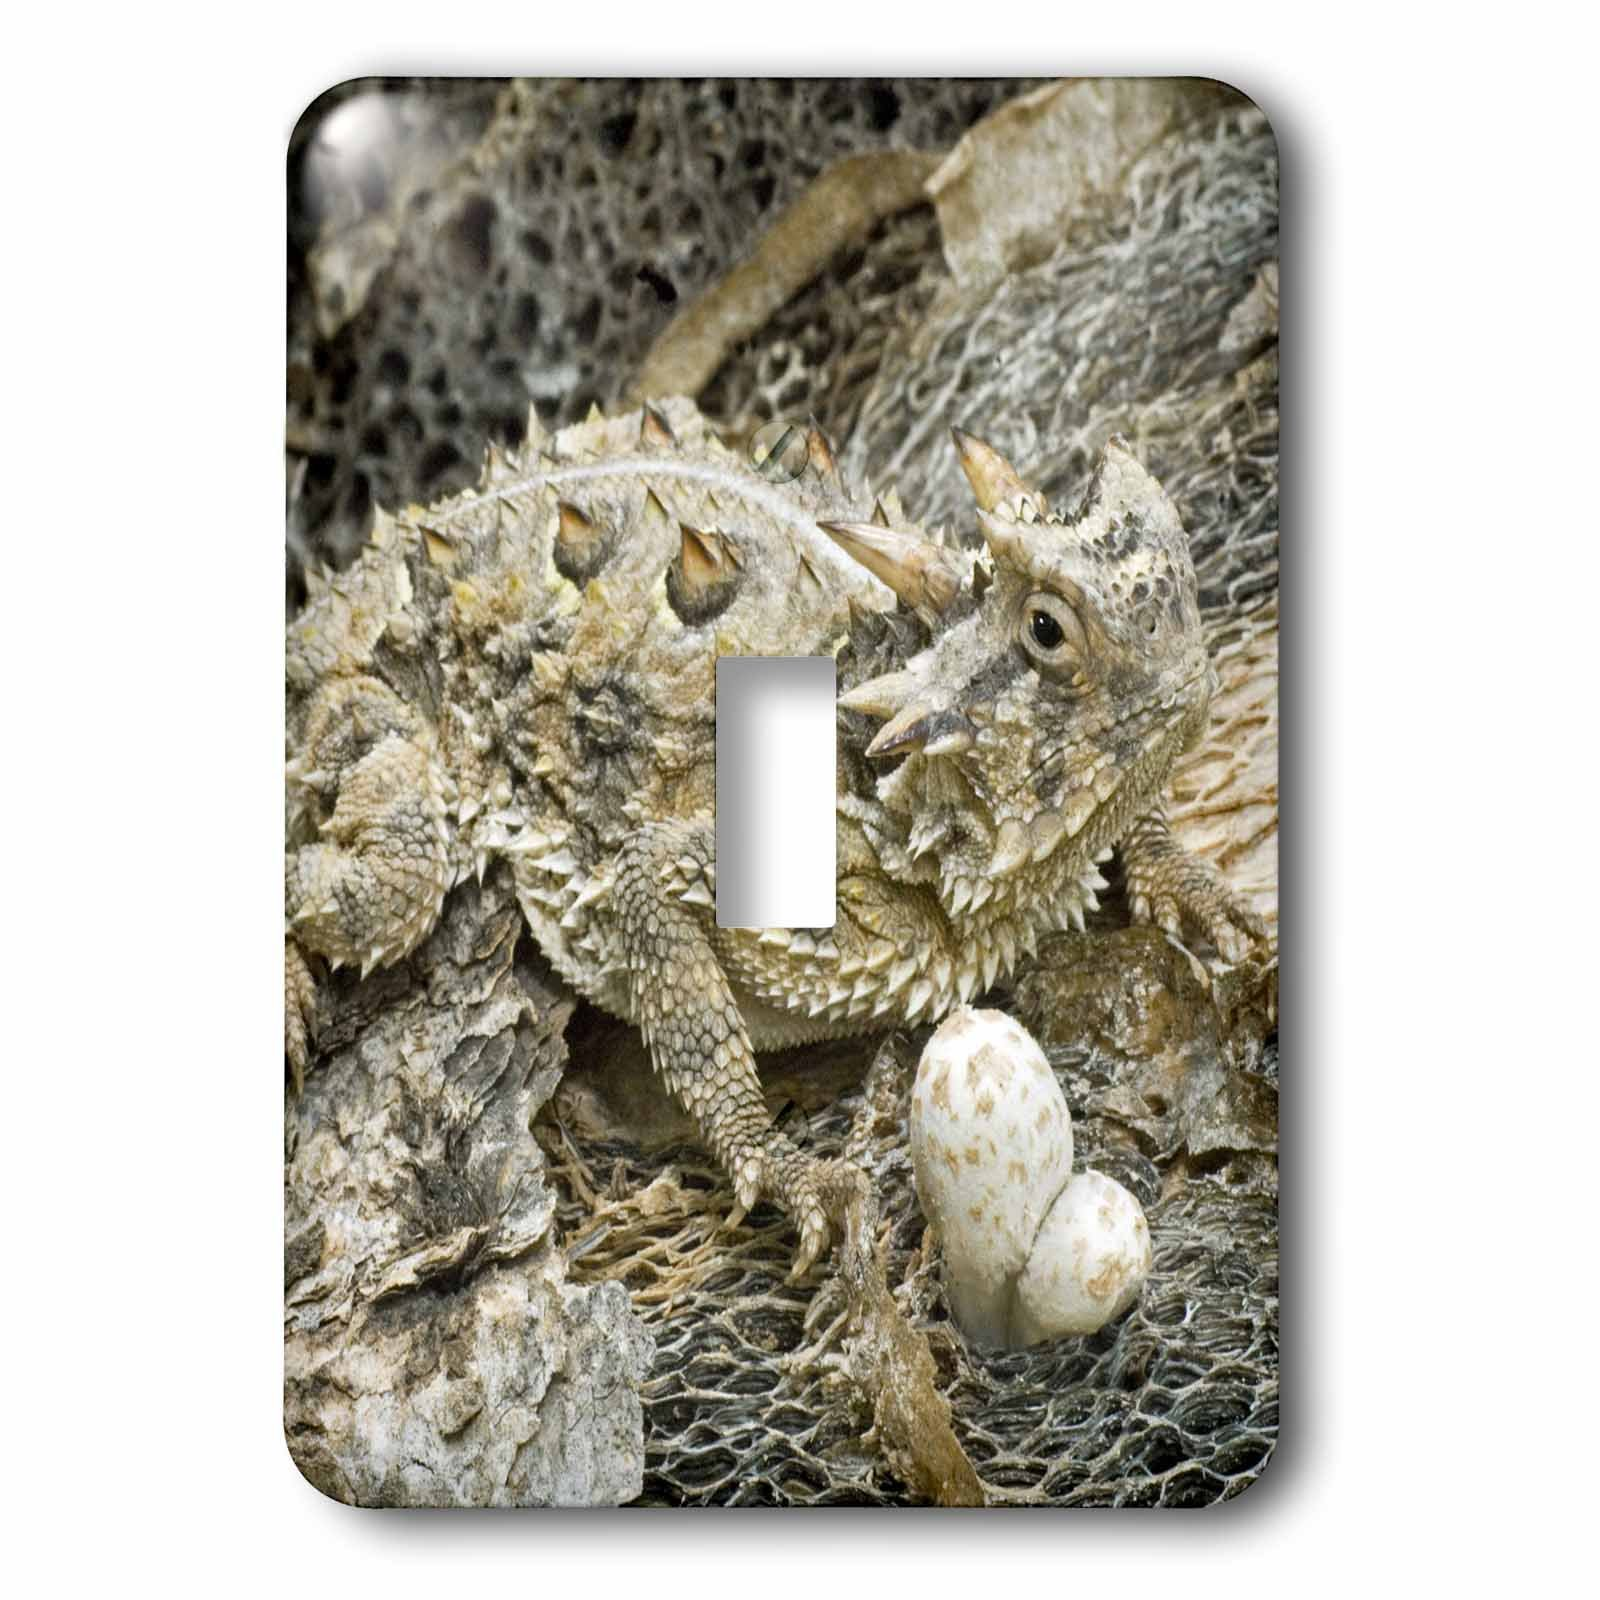 3dRose lsp_94394_1 Usa, Texas, Rio Grande Valley Horned Lizard Us44 Bja0134 Jaynes Gallery Light Switch Cover